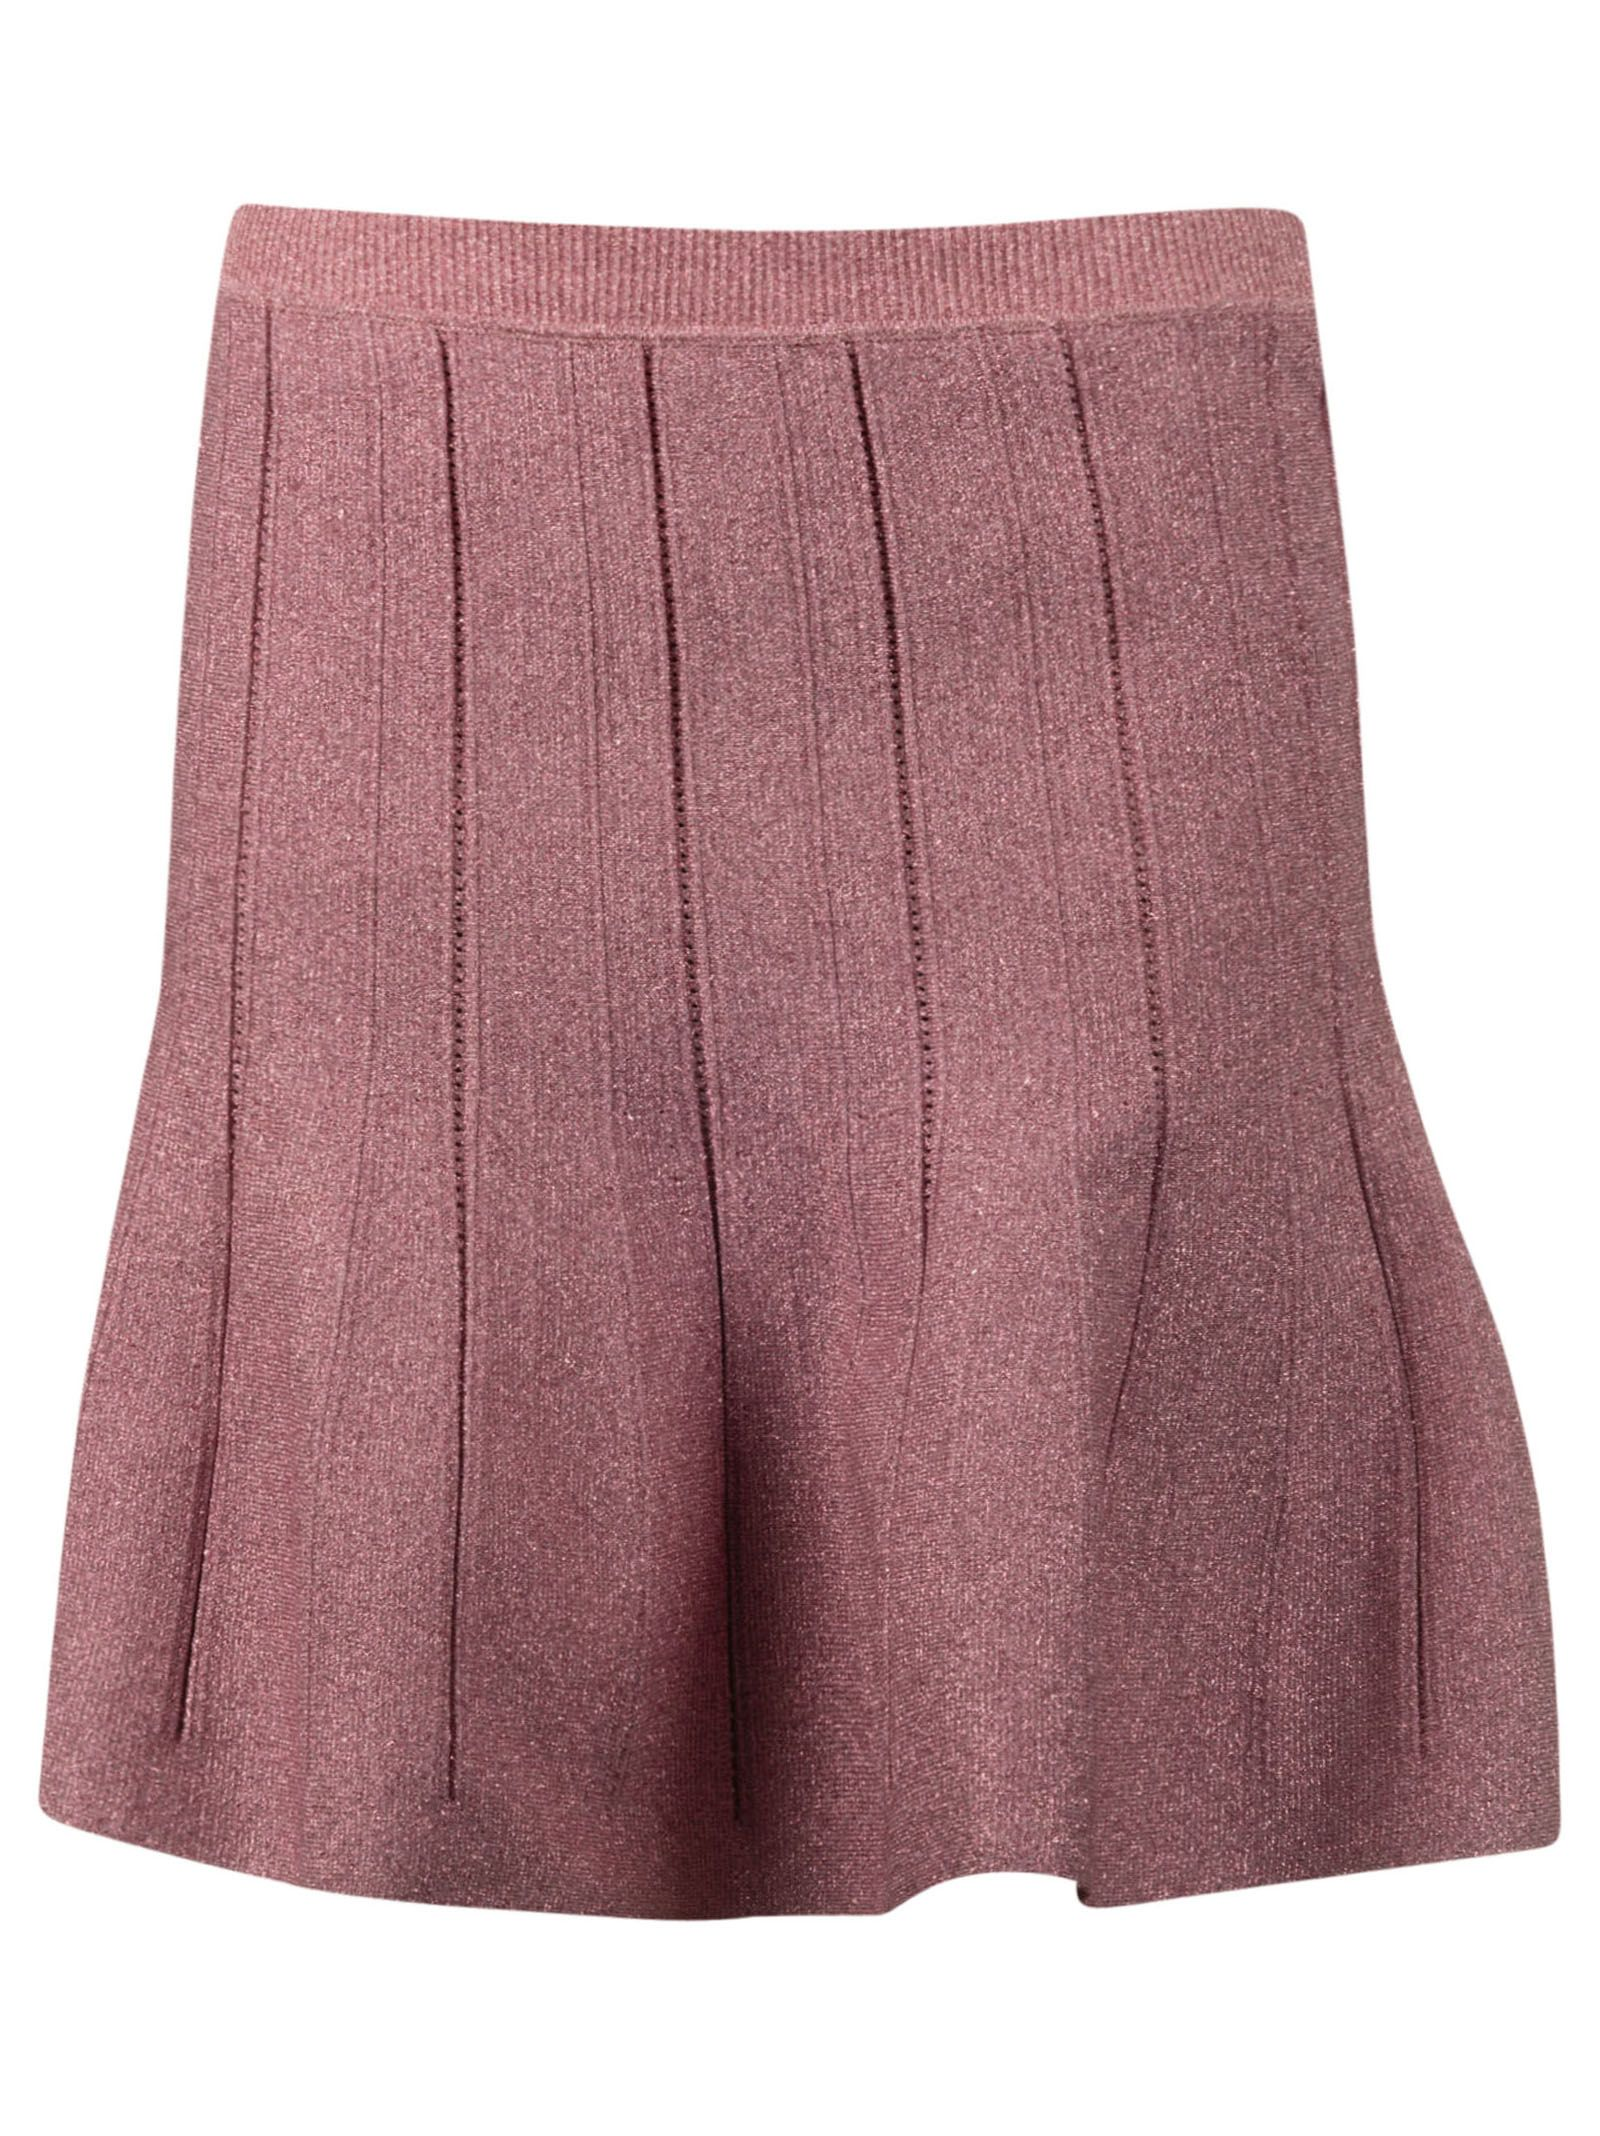 Alberta Ferretti Flared Short Skirt